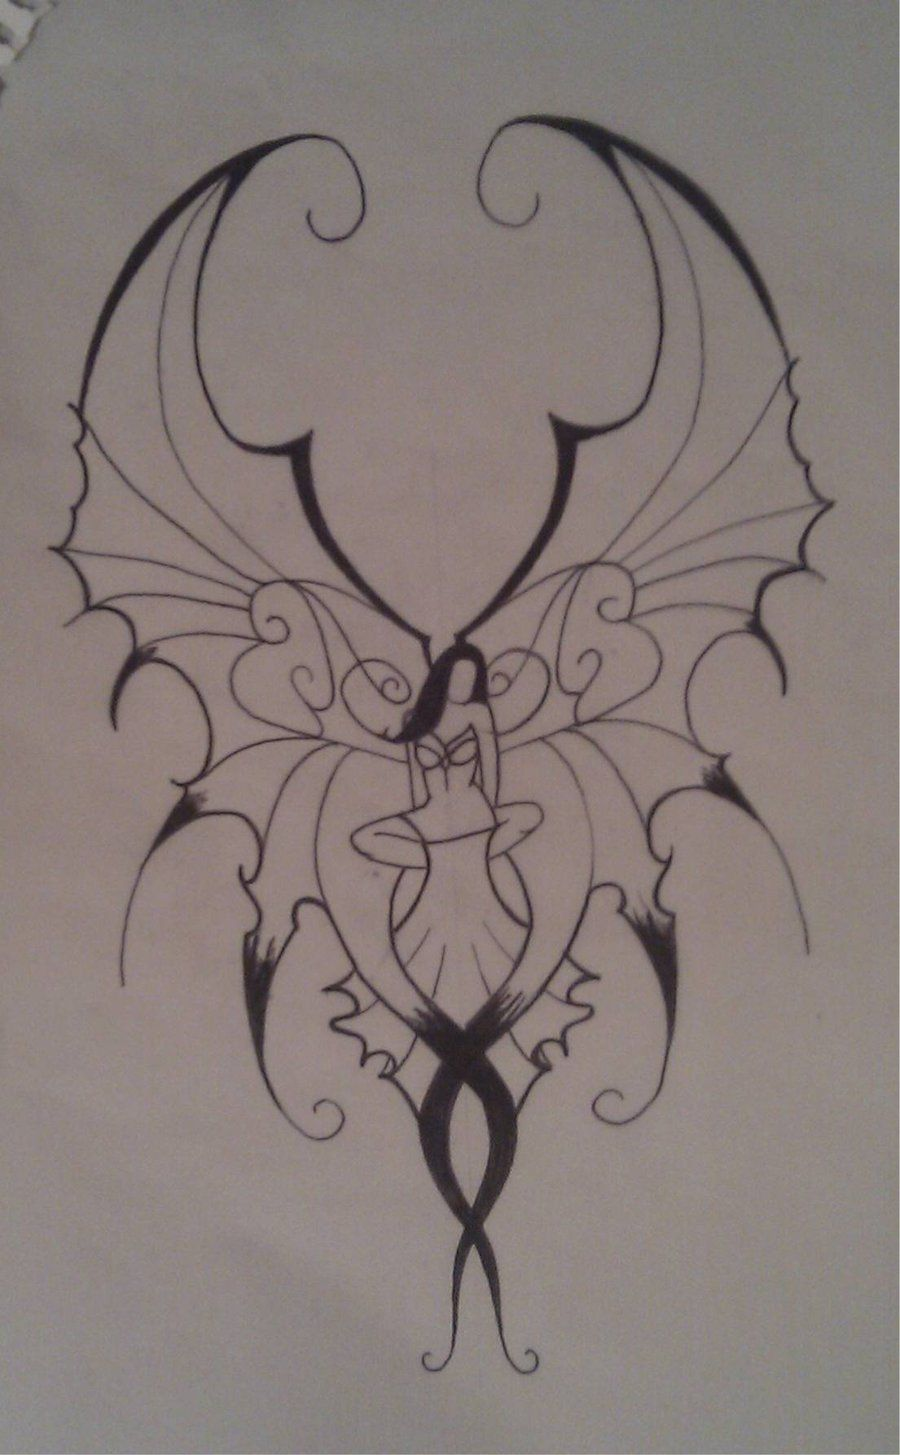 Easy Gothic Drawings : gothic, drawings, Images, Drawings, Gothic, Fairies, Fairy, Wings, Drawing,, Drawings,